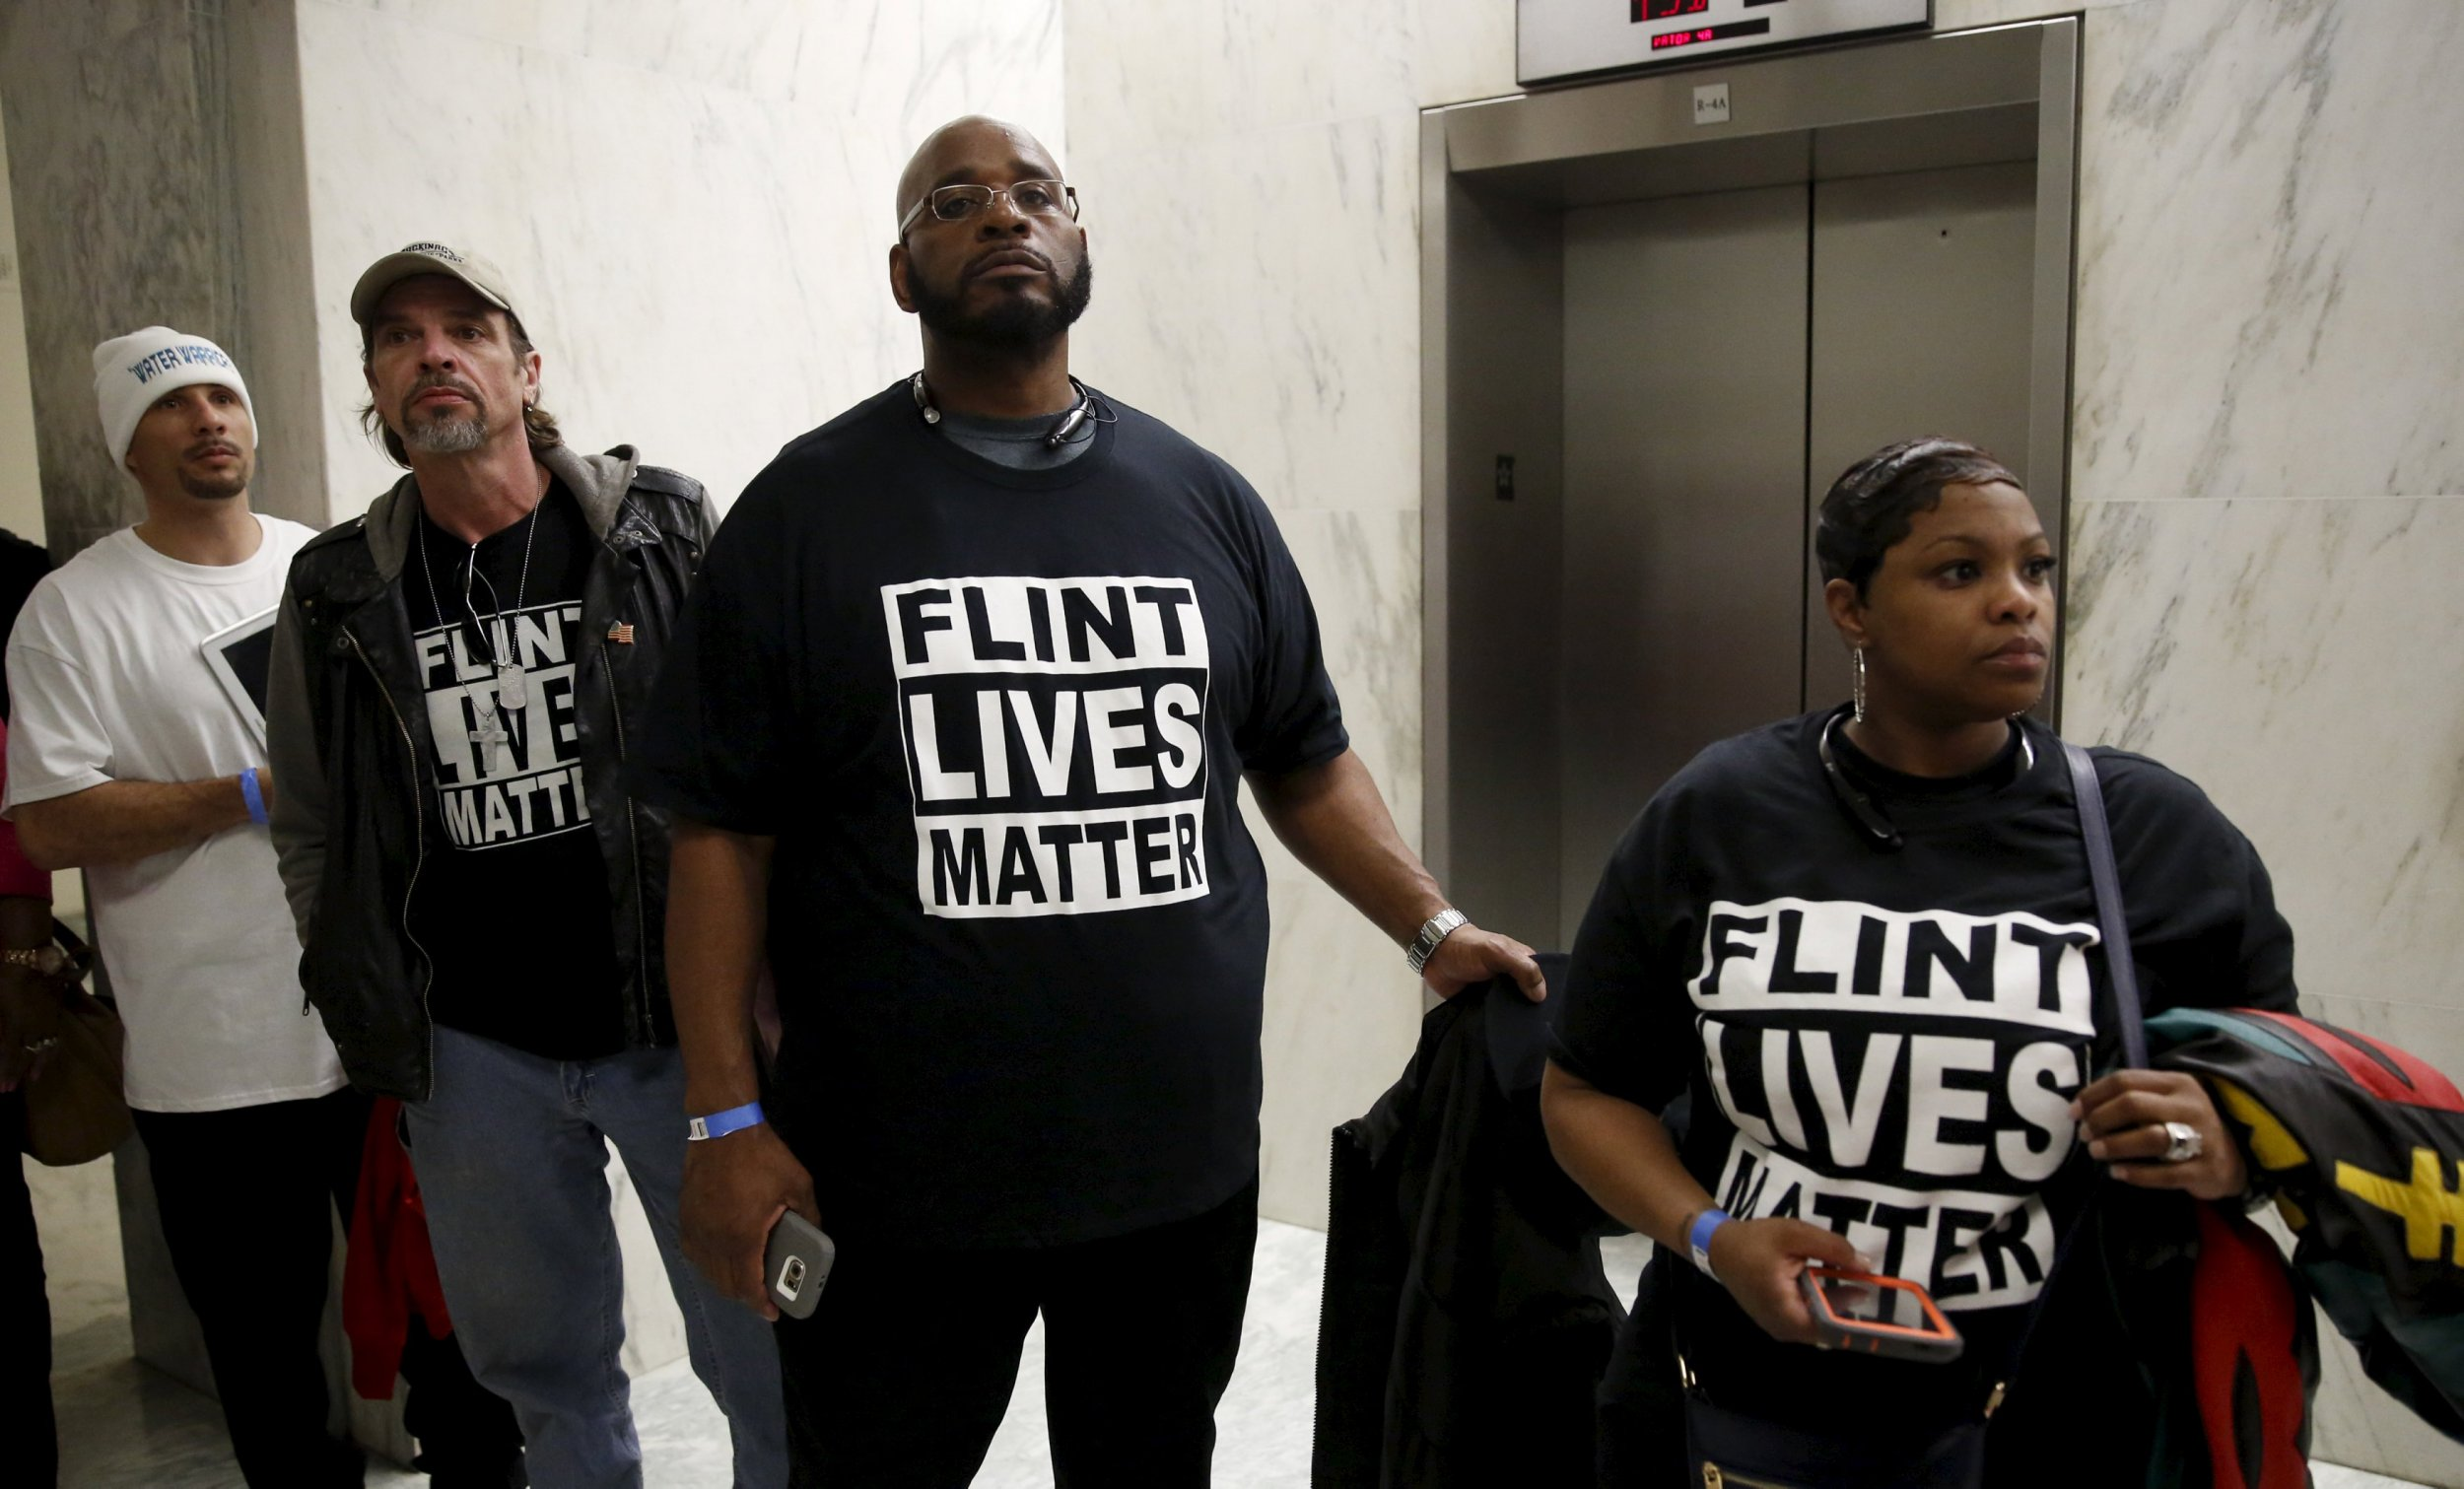 flint_racketerring_lawsuit_0407